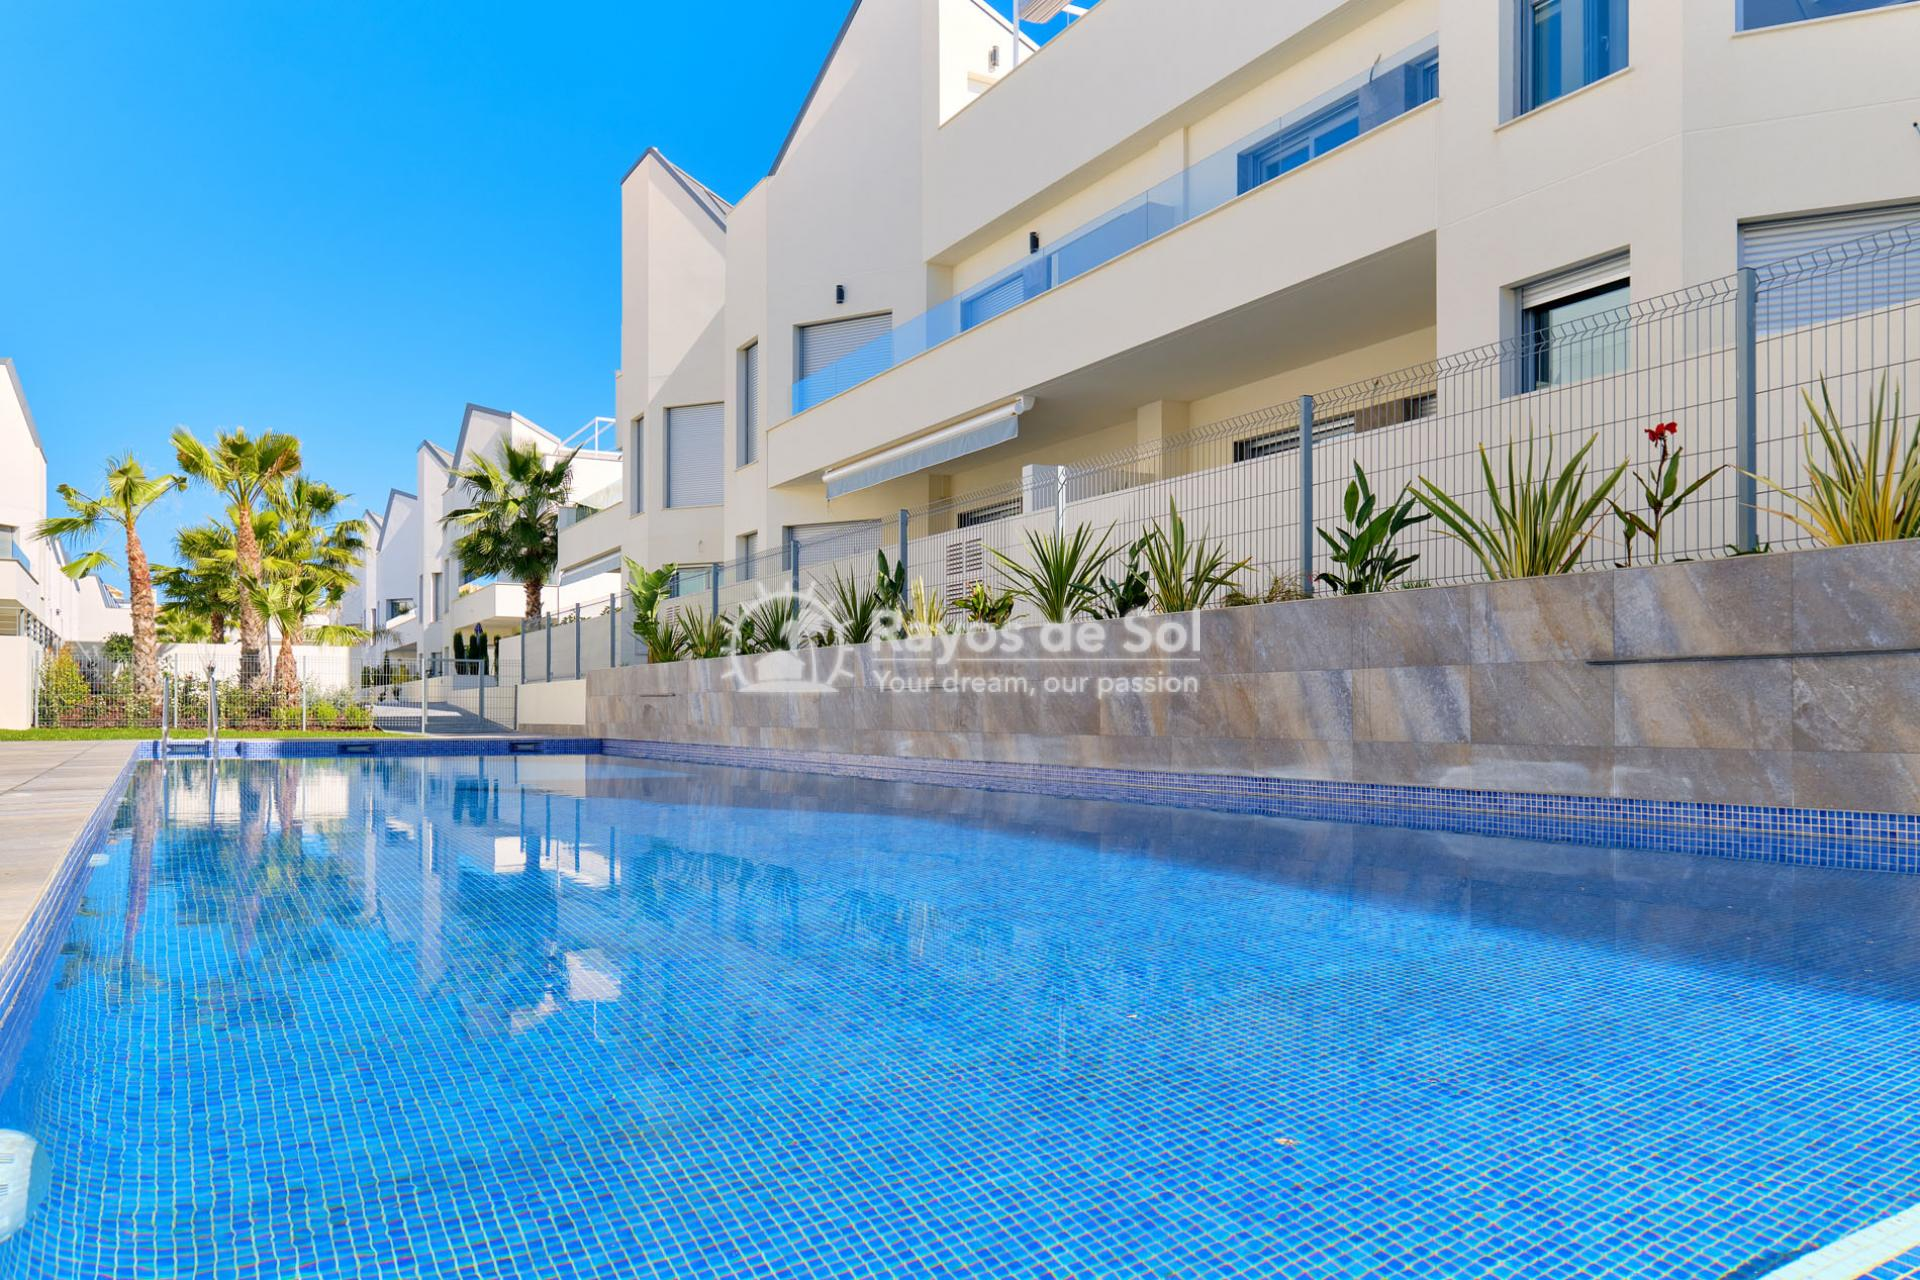 Townhouse  in Torrevieja, Costa Blanca (vamalia2-dpx) - 40